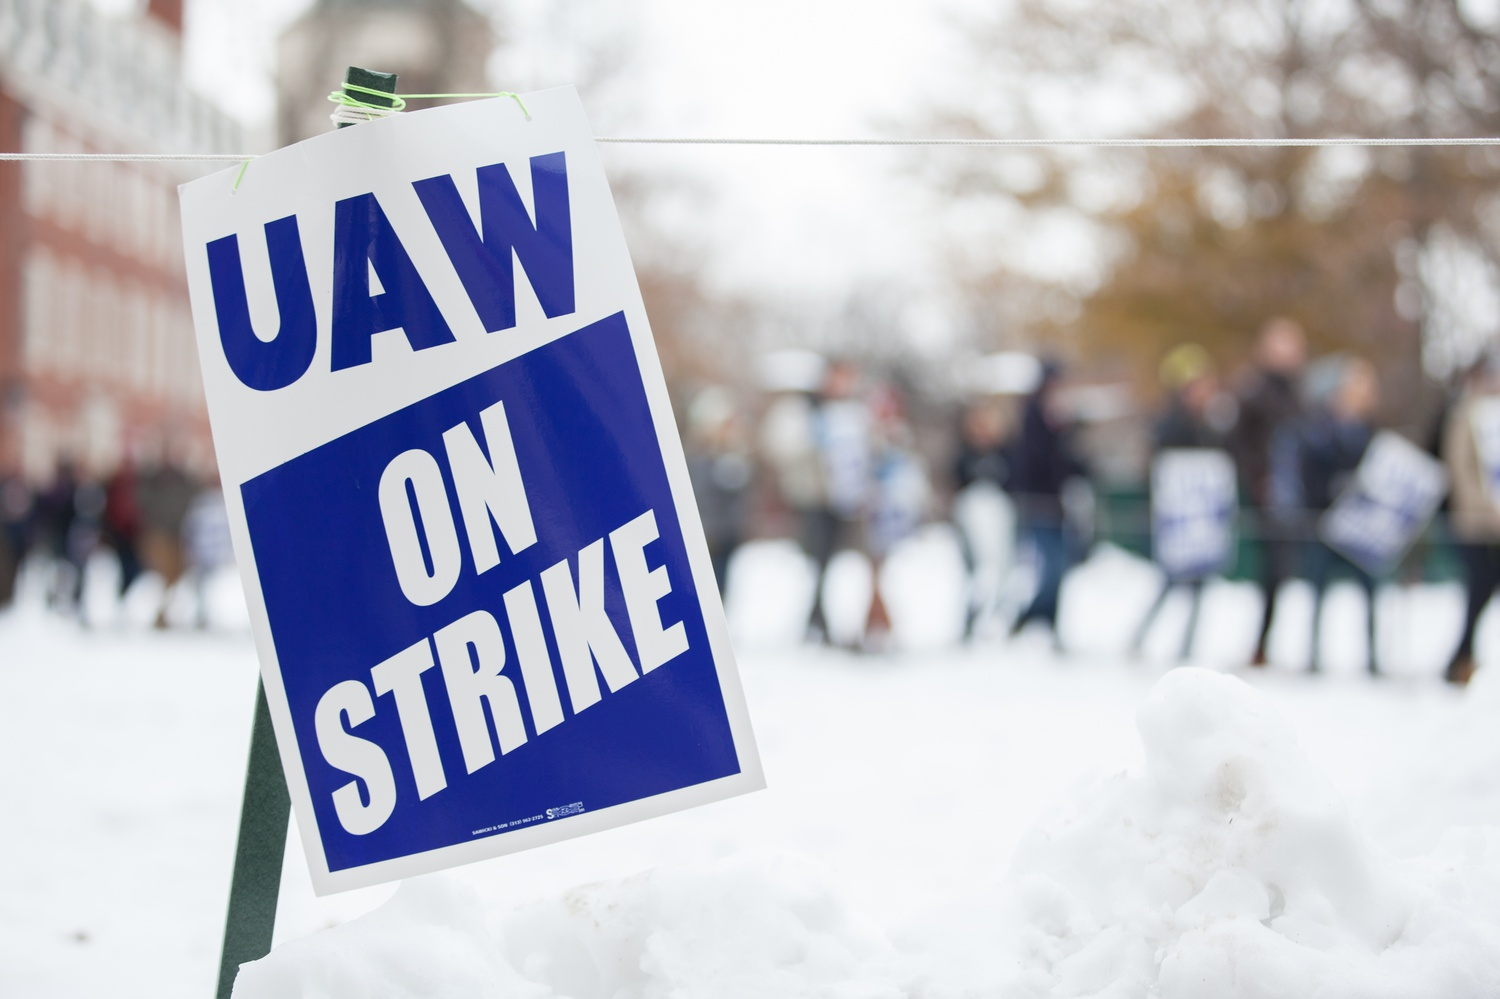 Harvard Graduate Students Union-United Automobile Workers went on strike last year beginning Dec 3.